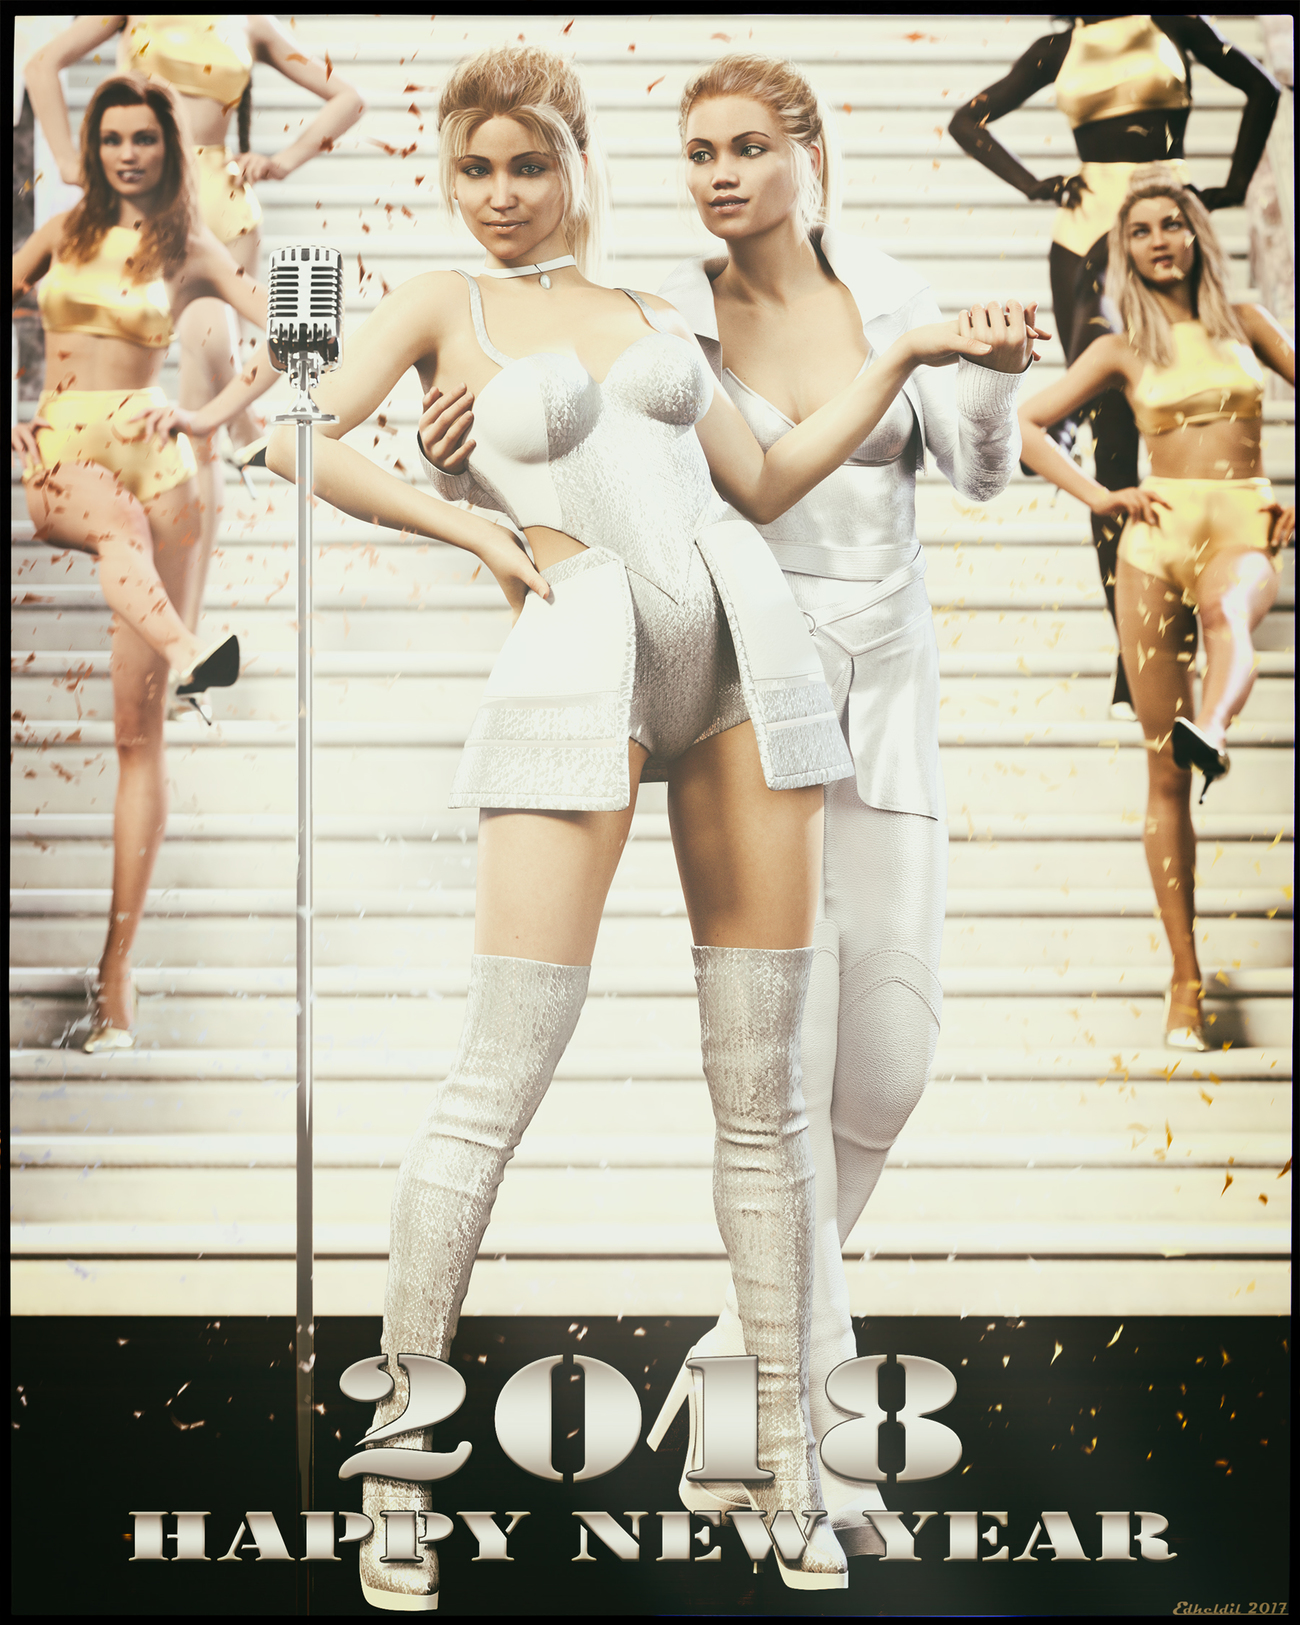 New Year's Eve Revue 2017-2018 by Edheldil